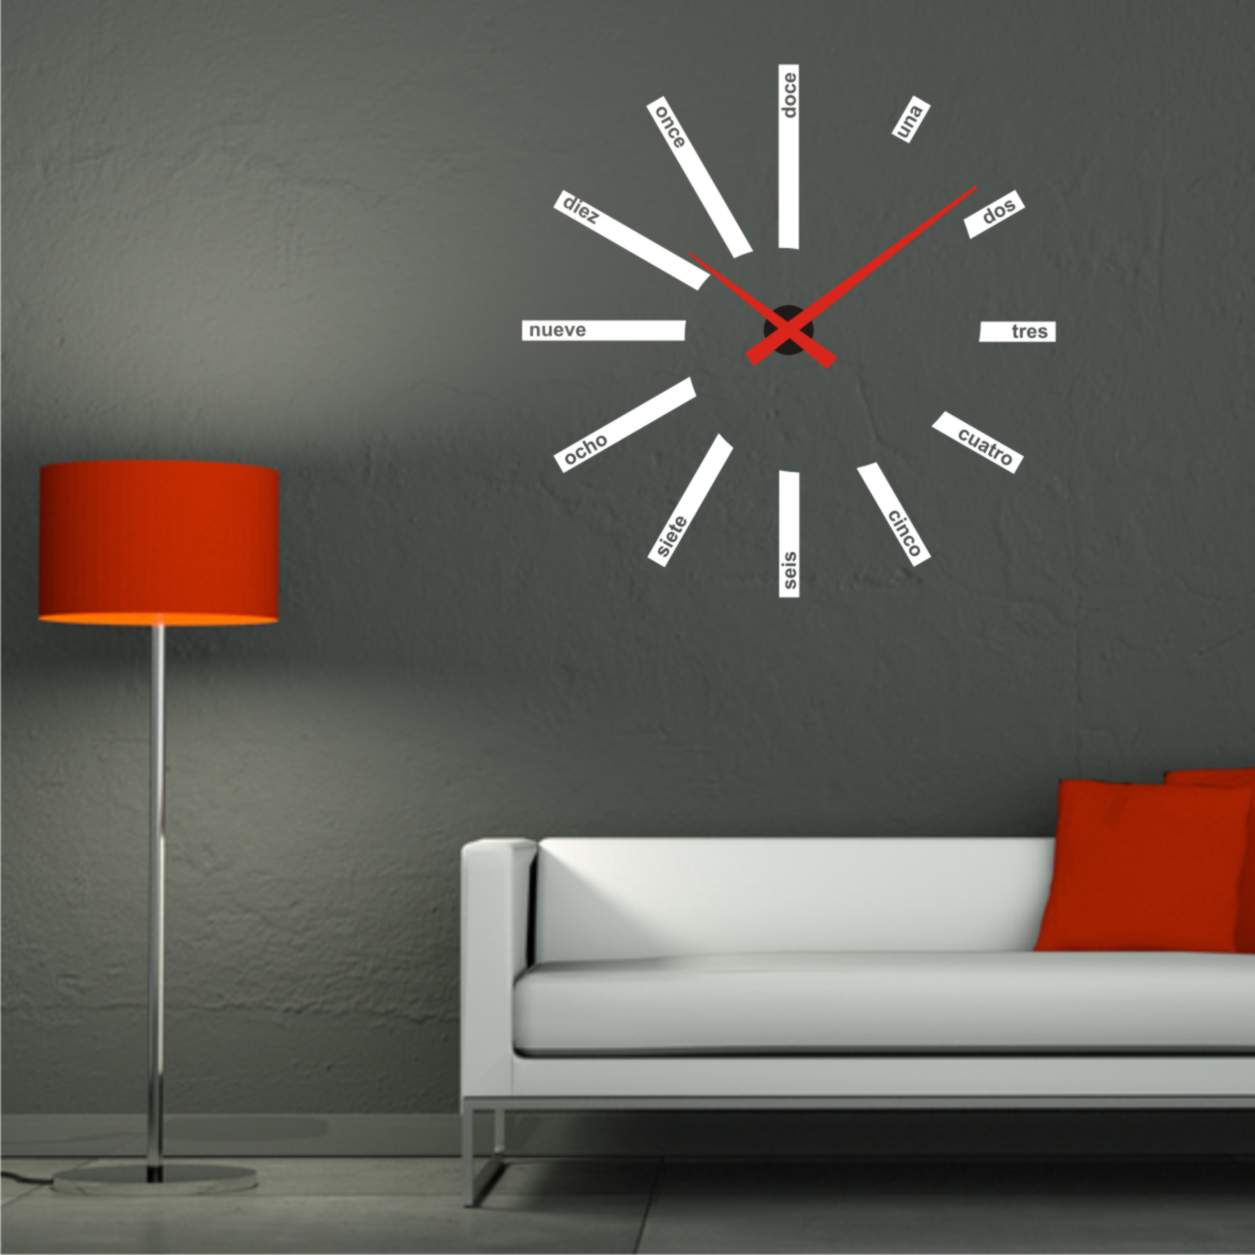 Tipos de relojes de pared cu les hay decoraci n de for Relojes decorativos para salon